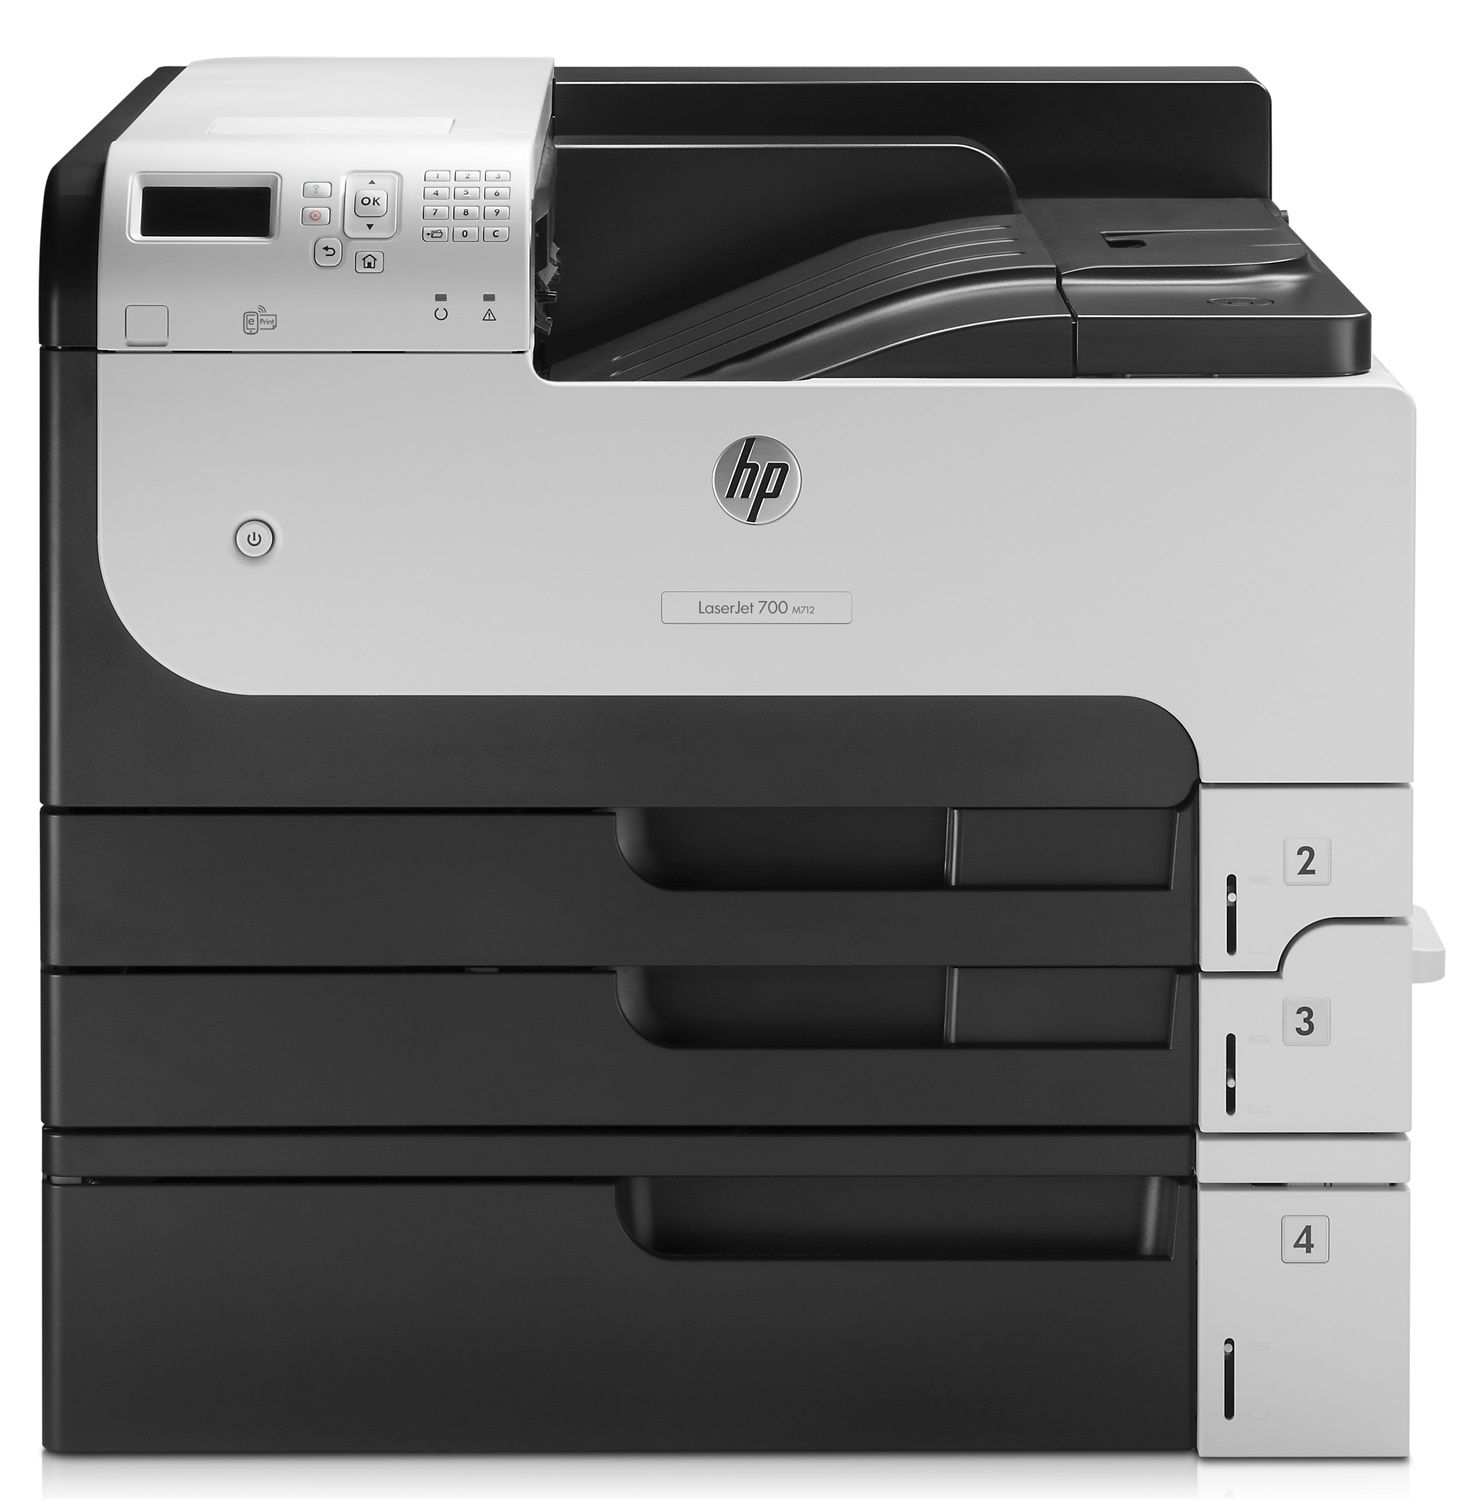 HP LaserJet Enterprise M712xh